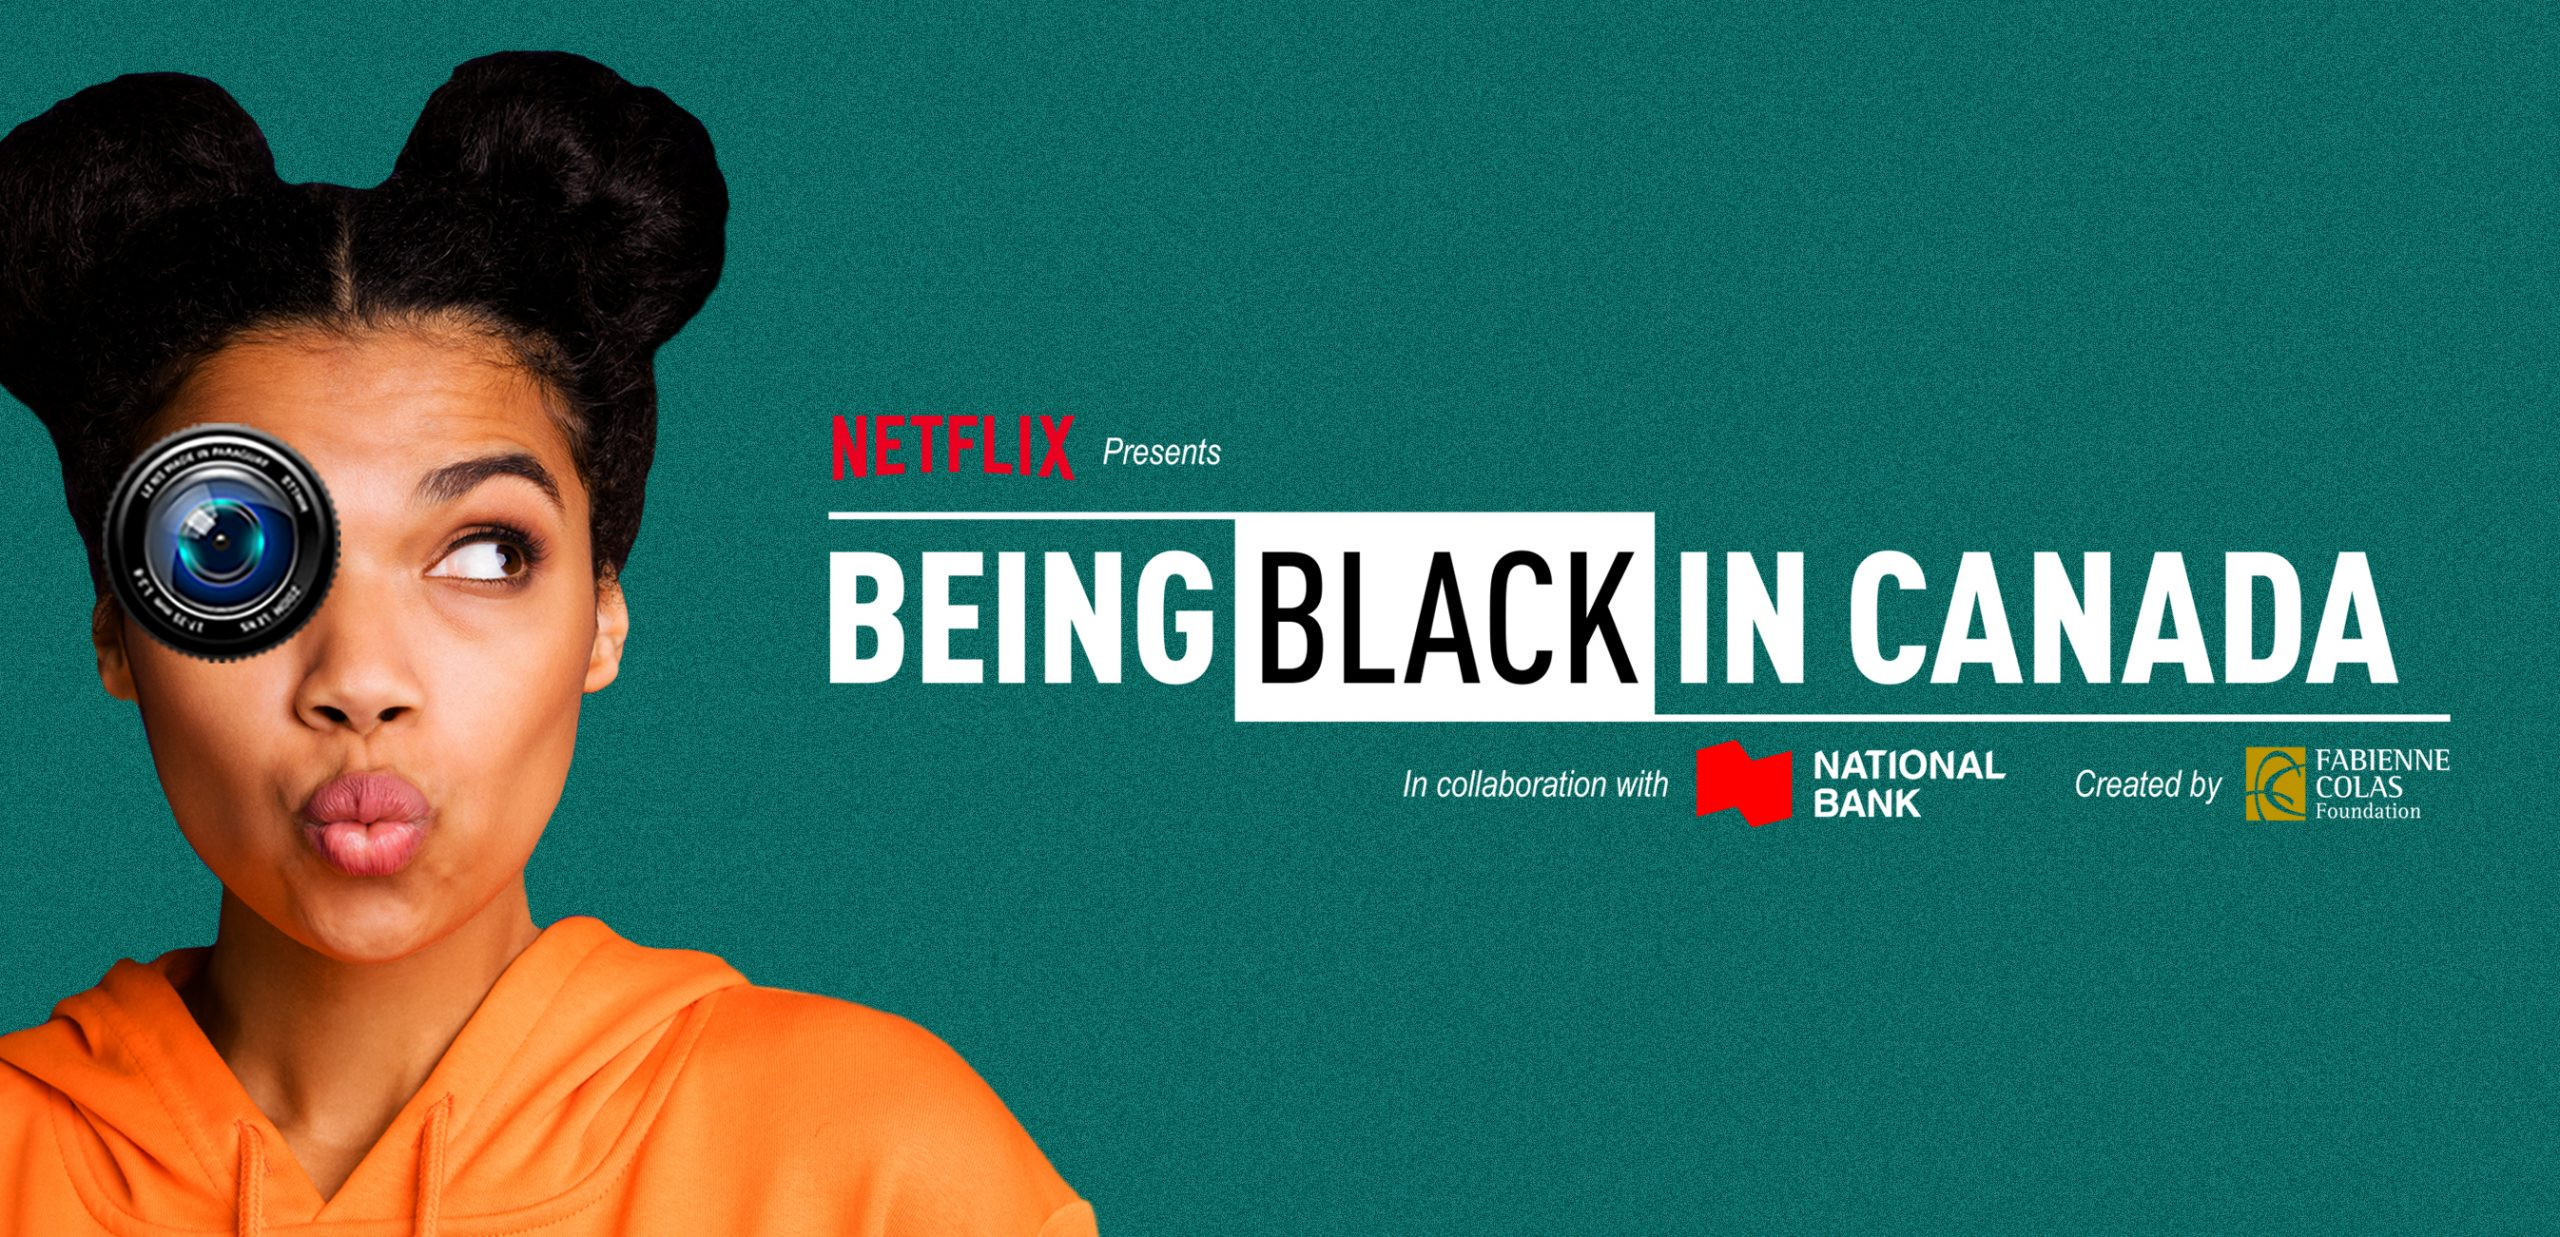 CALL FOR APPLICATIONS Fabienne Colas Foundation's BEING BLACK IN CANADA Presented by Netflix in collaboration with the National Bank  Montreal, Toronto, Halifax, Calgary, Vancouver, Ottawa